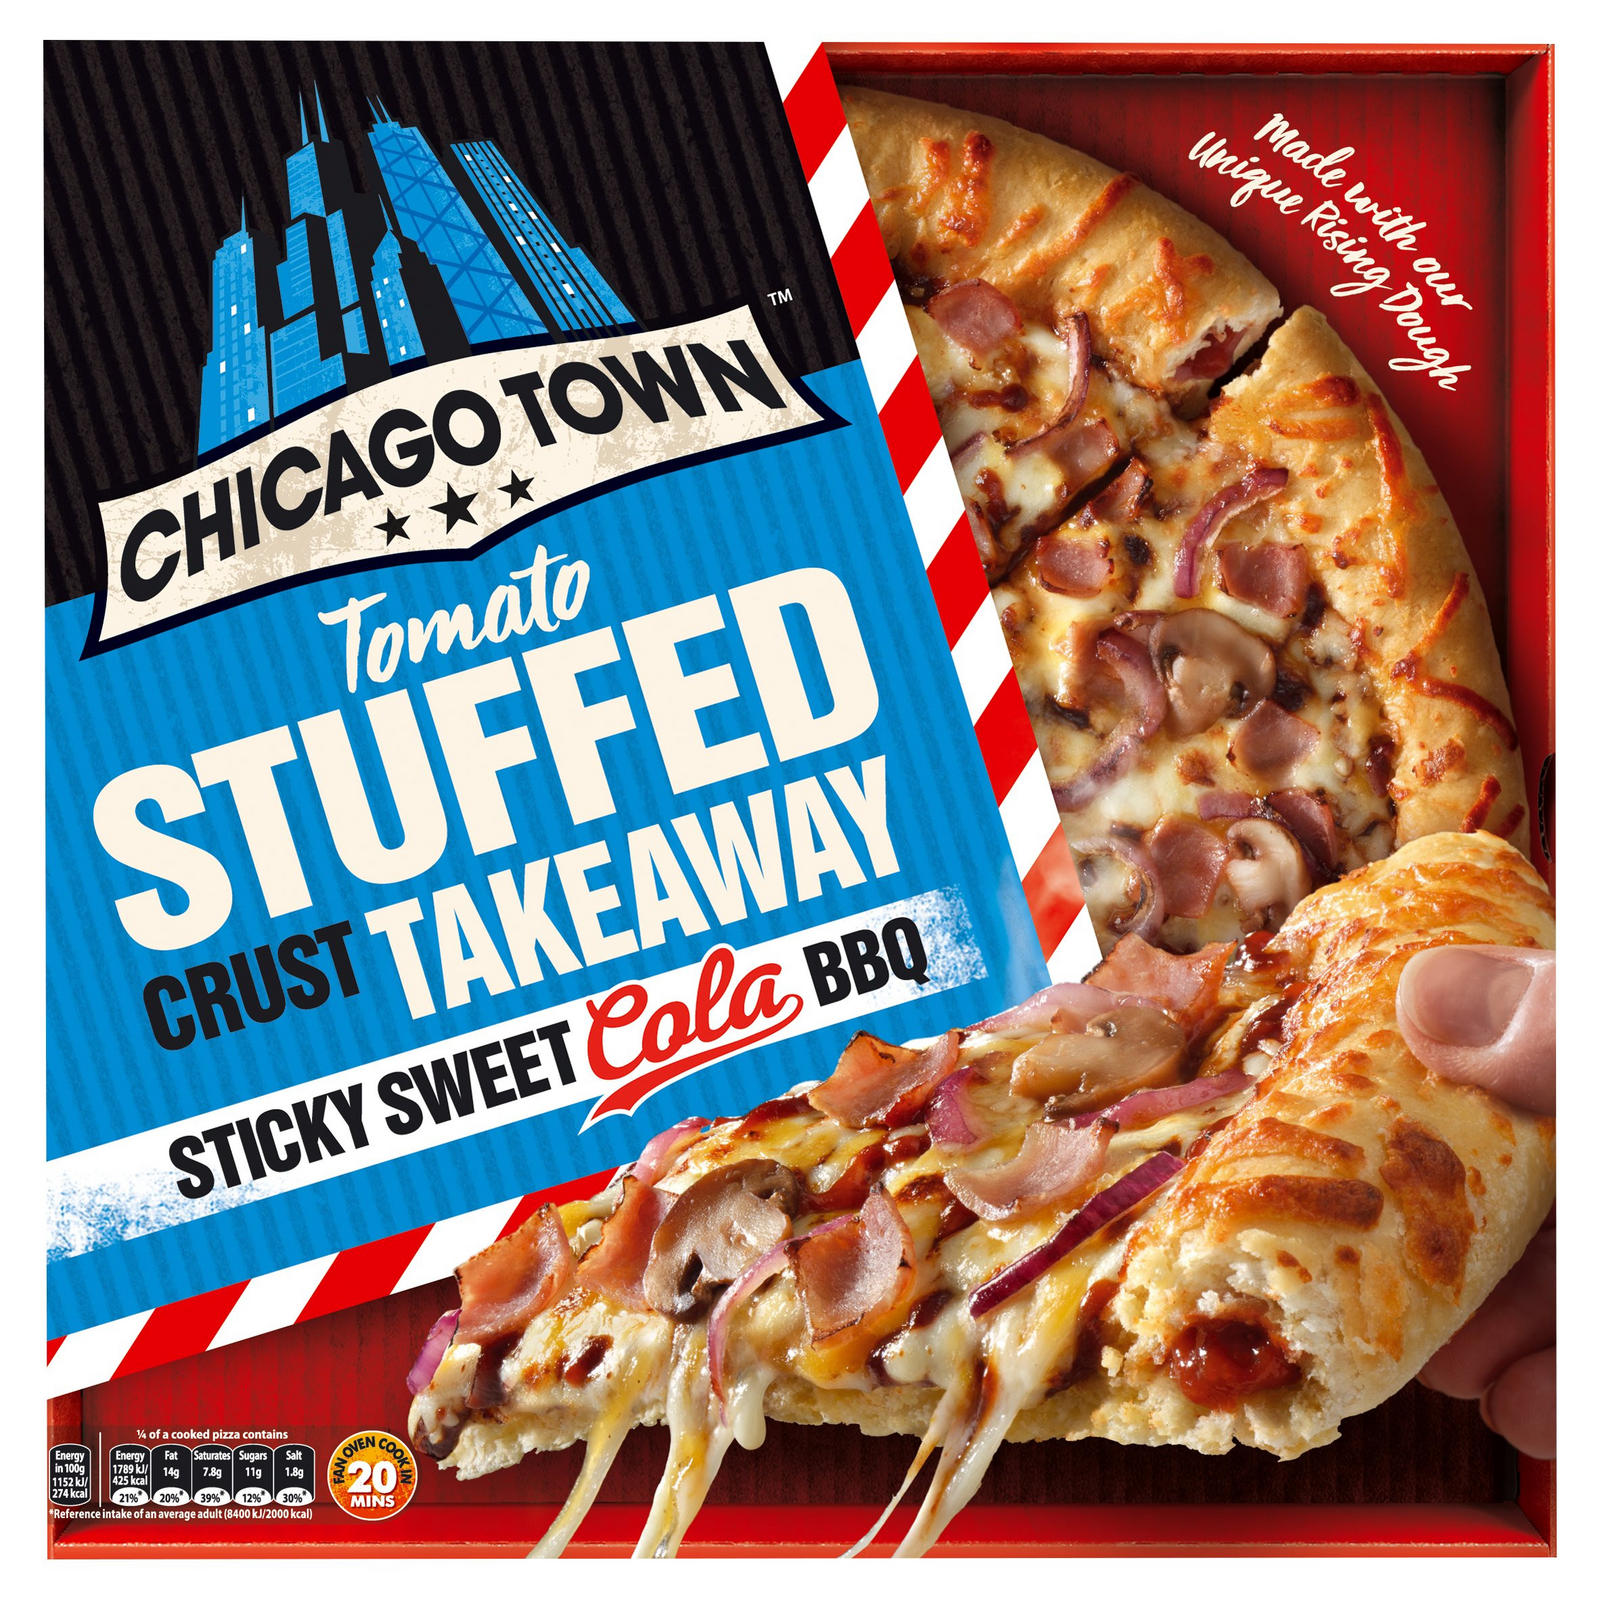 Chicago Town Takeaway Large Stuffed Crust Sticky Sweet Cola